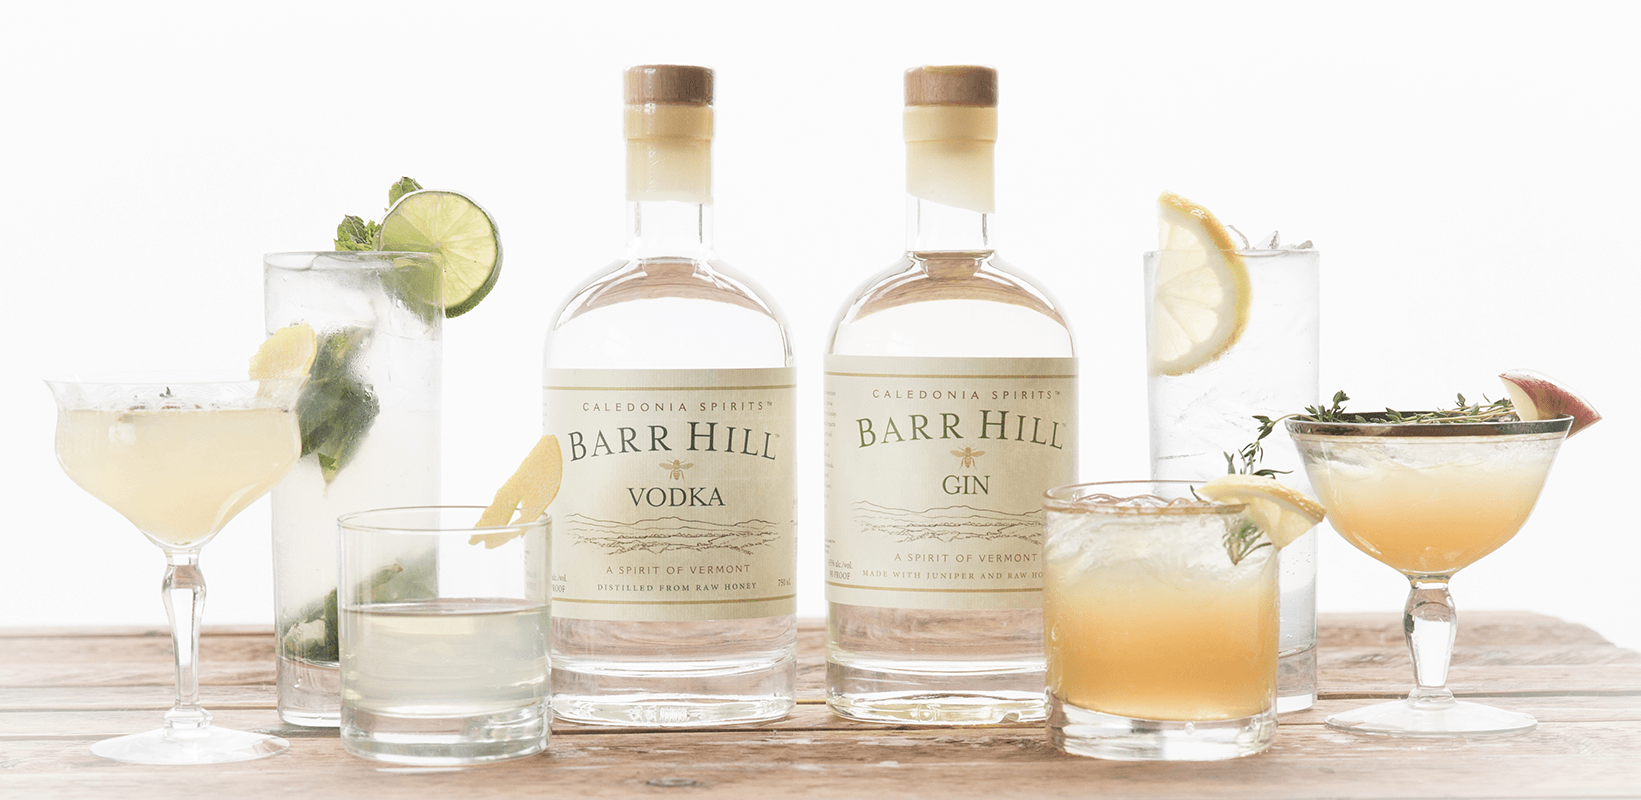 Image of cocktails made with Barr Hill Vodka and Barr Hill Gin